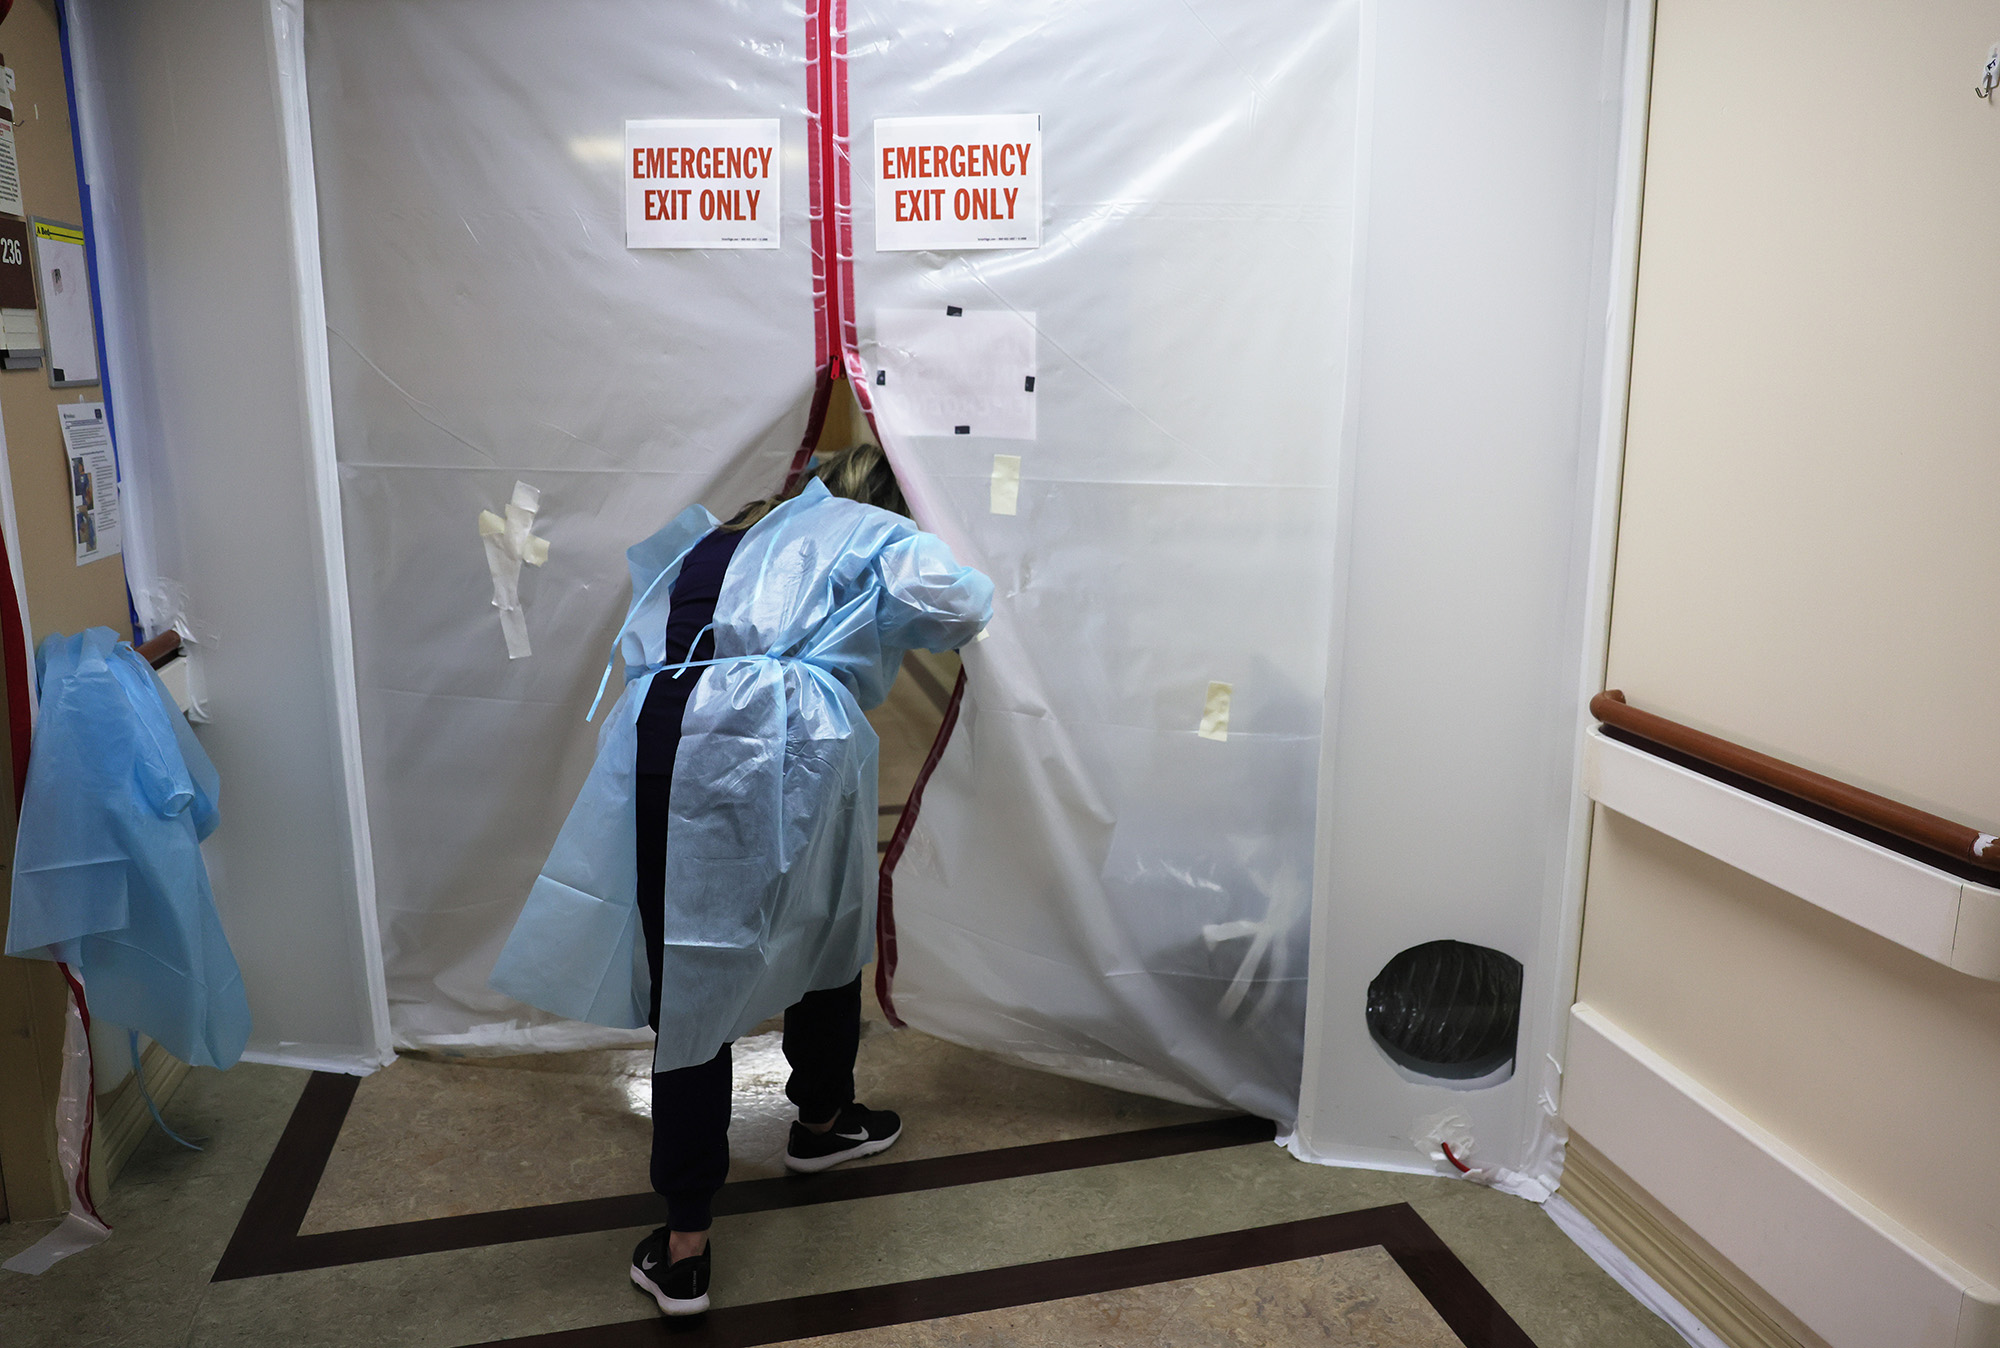 A clinician walks out of a Covid isolation area at Providence St. Mary Medical Center on December 23, in Apple Valley, California.